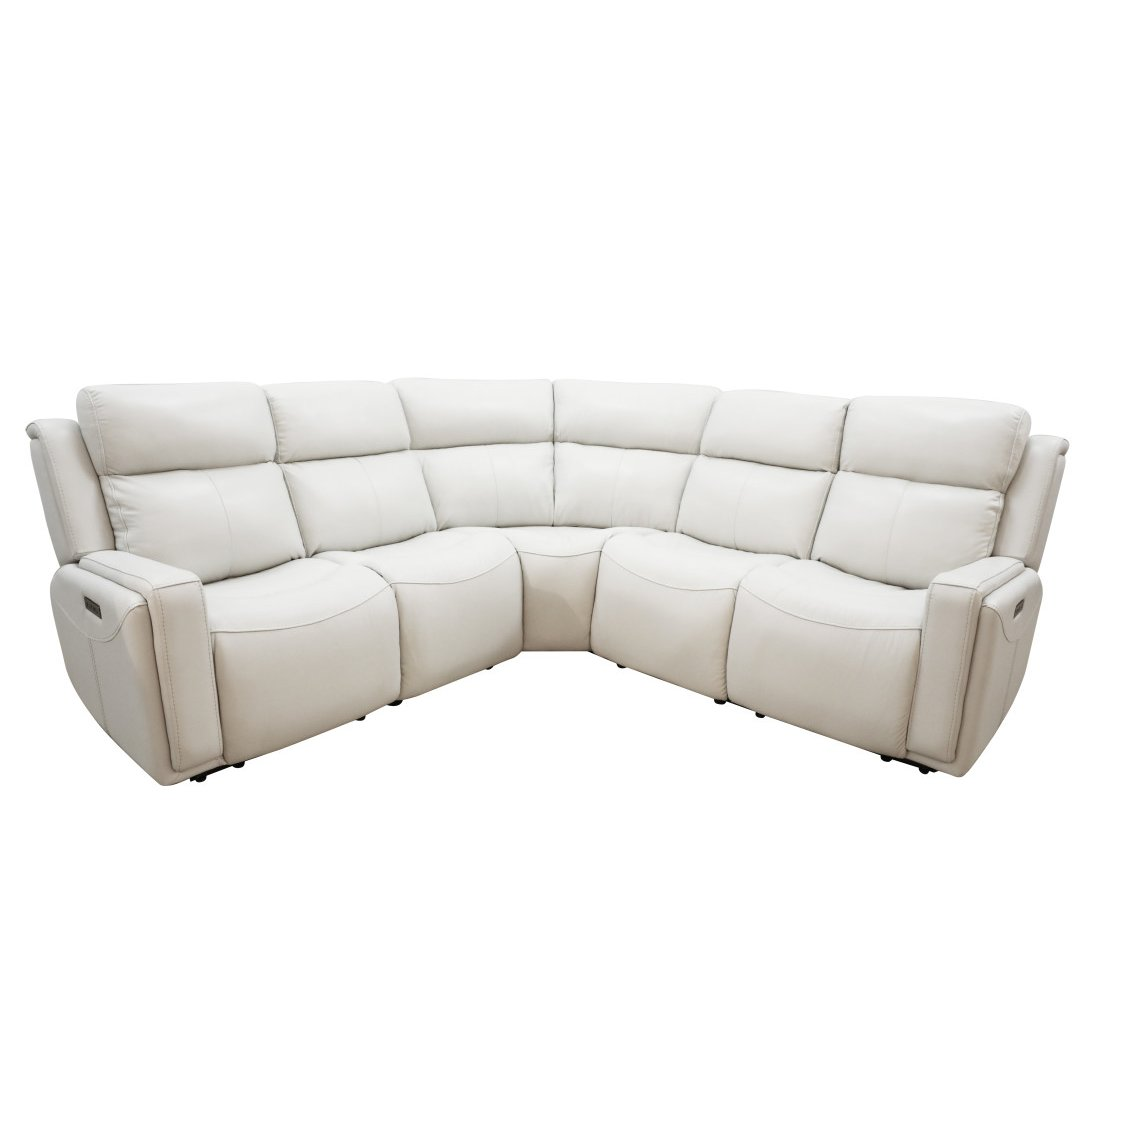 Terrific Ice White Leather Match Power Reclining Sectional Sofa Stratus Gmtry Best Dining Table And Chair Ideas Images Gmtryco